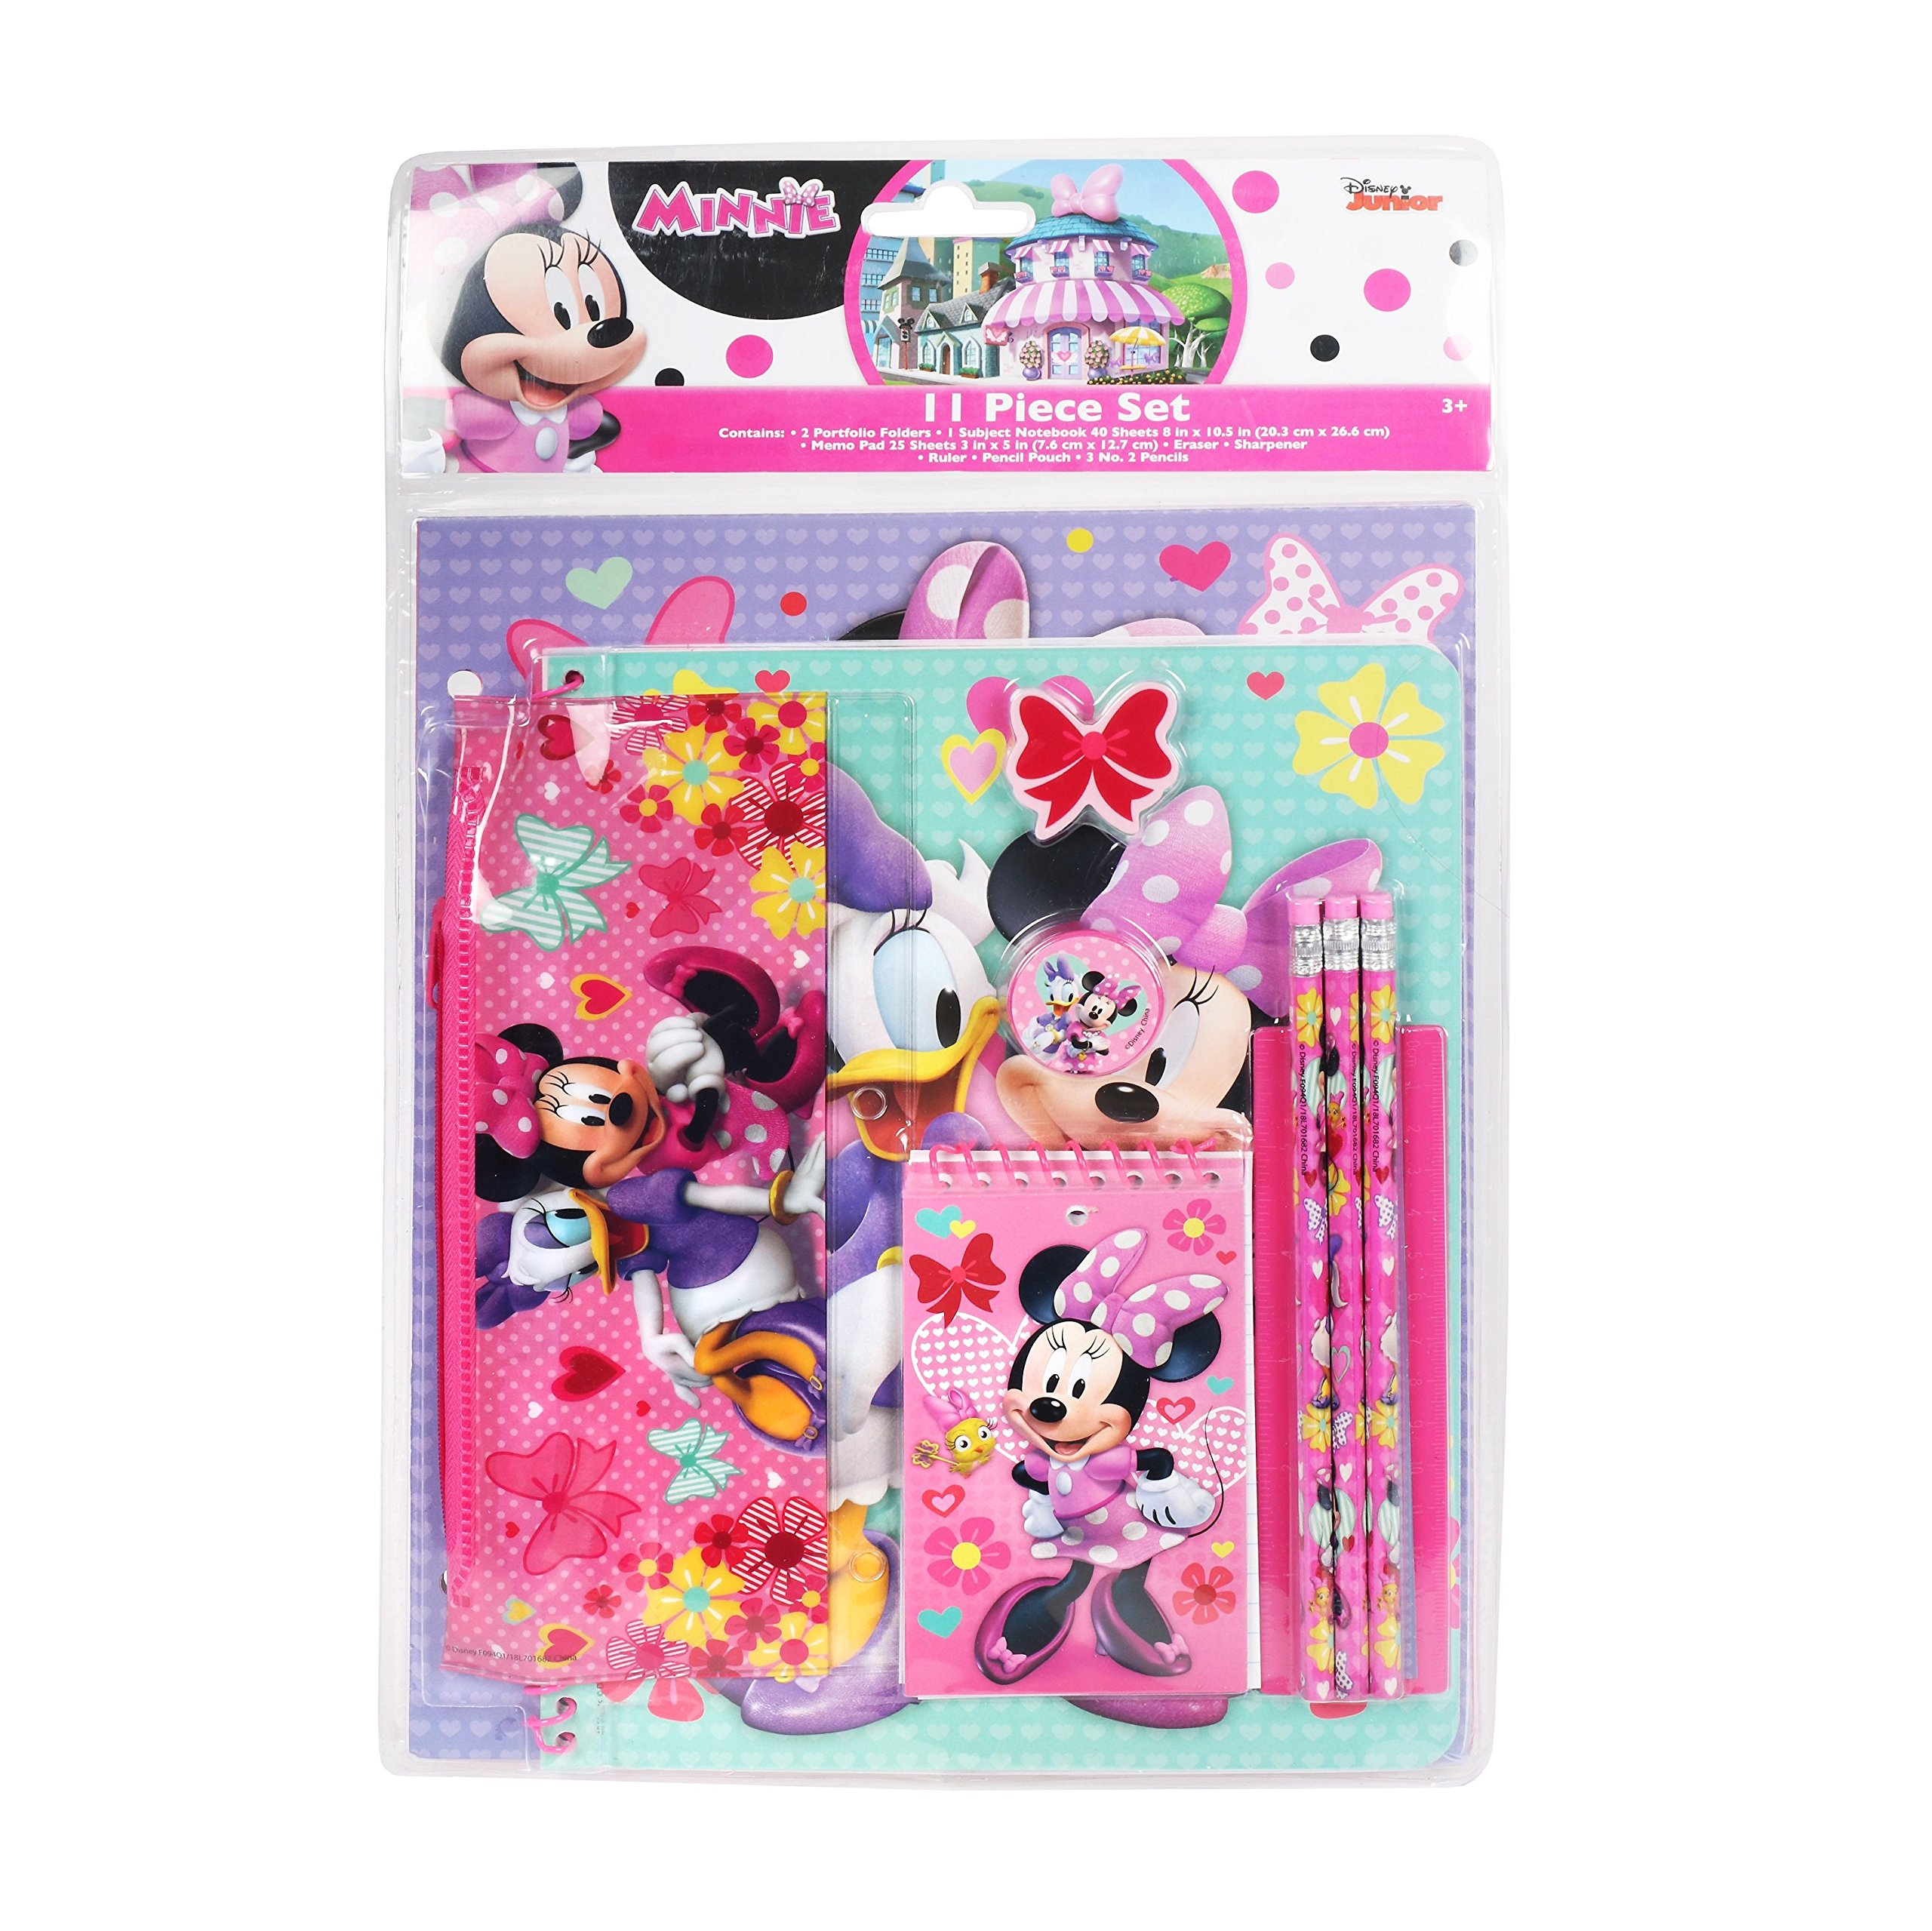 Disney Minnie Mouse 11 Piece Set Back to School for Girls